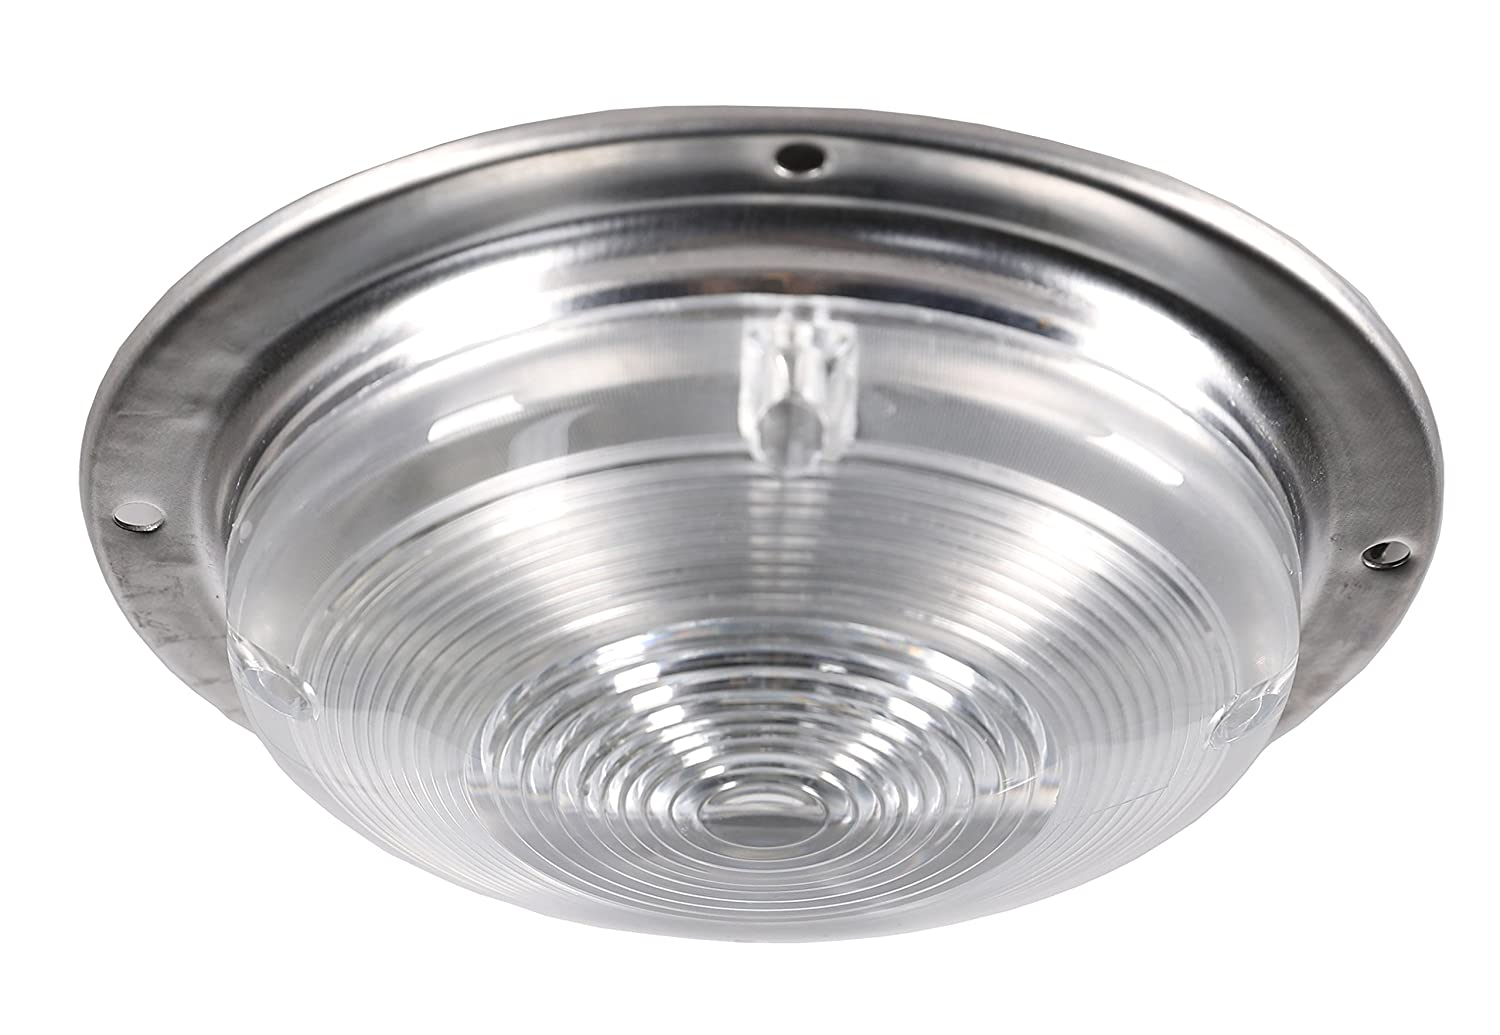 Stainless Steel Silver Base Ceiling//Wall Light Use In Door/&Out Door Facon 12V RV Porch Light Scare Light Security Light